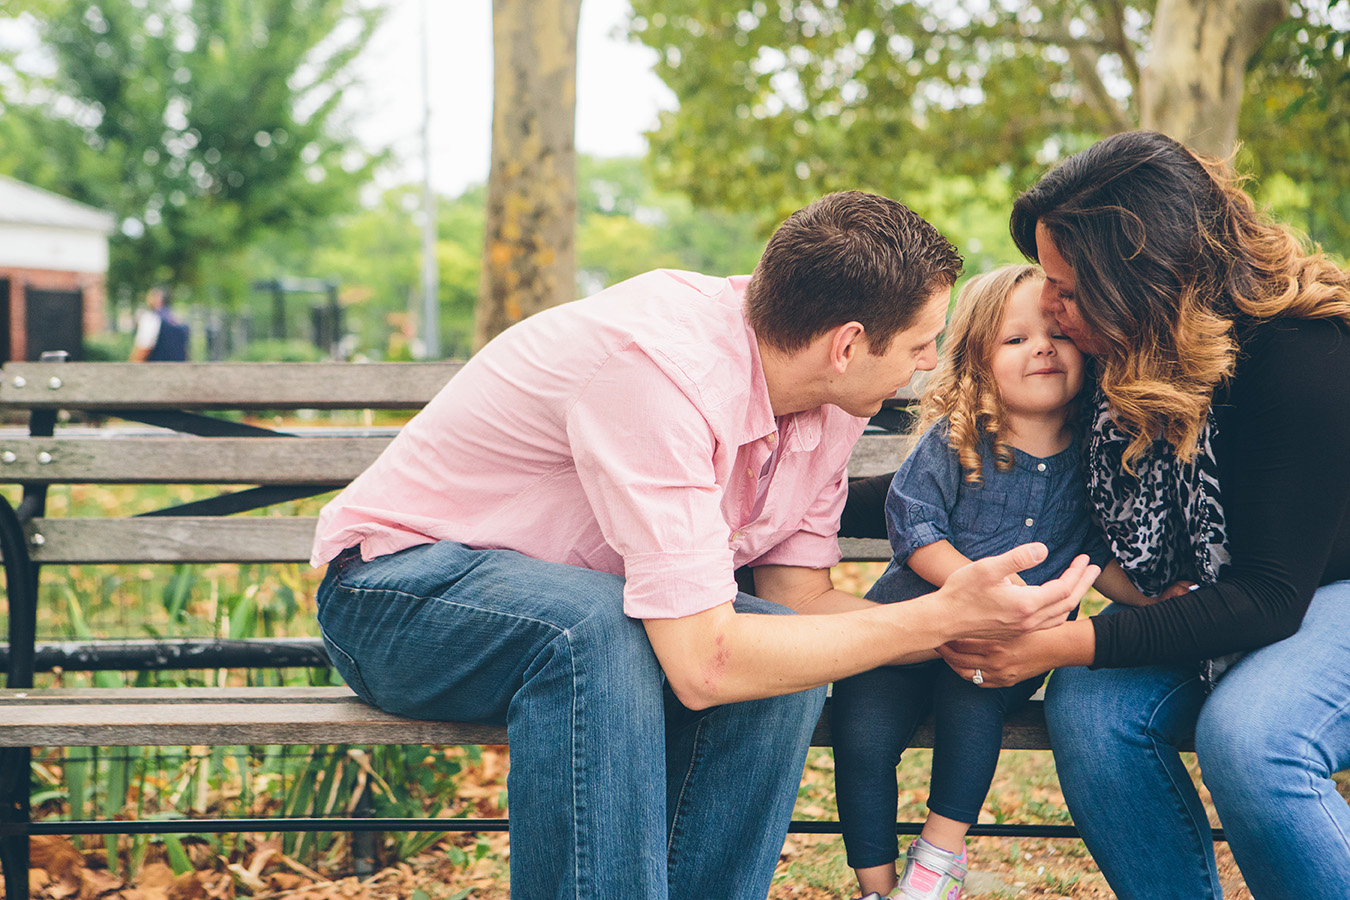 ISABEL-FAMILY-NYC-FAMILY-PHOTO-SESSION-CYNTHIACHUNG-0118.jpg